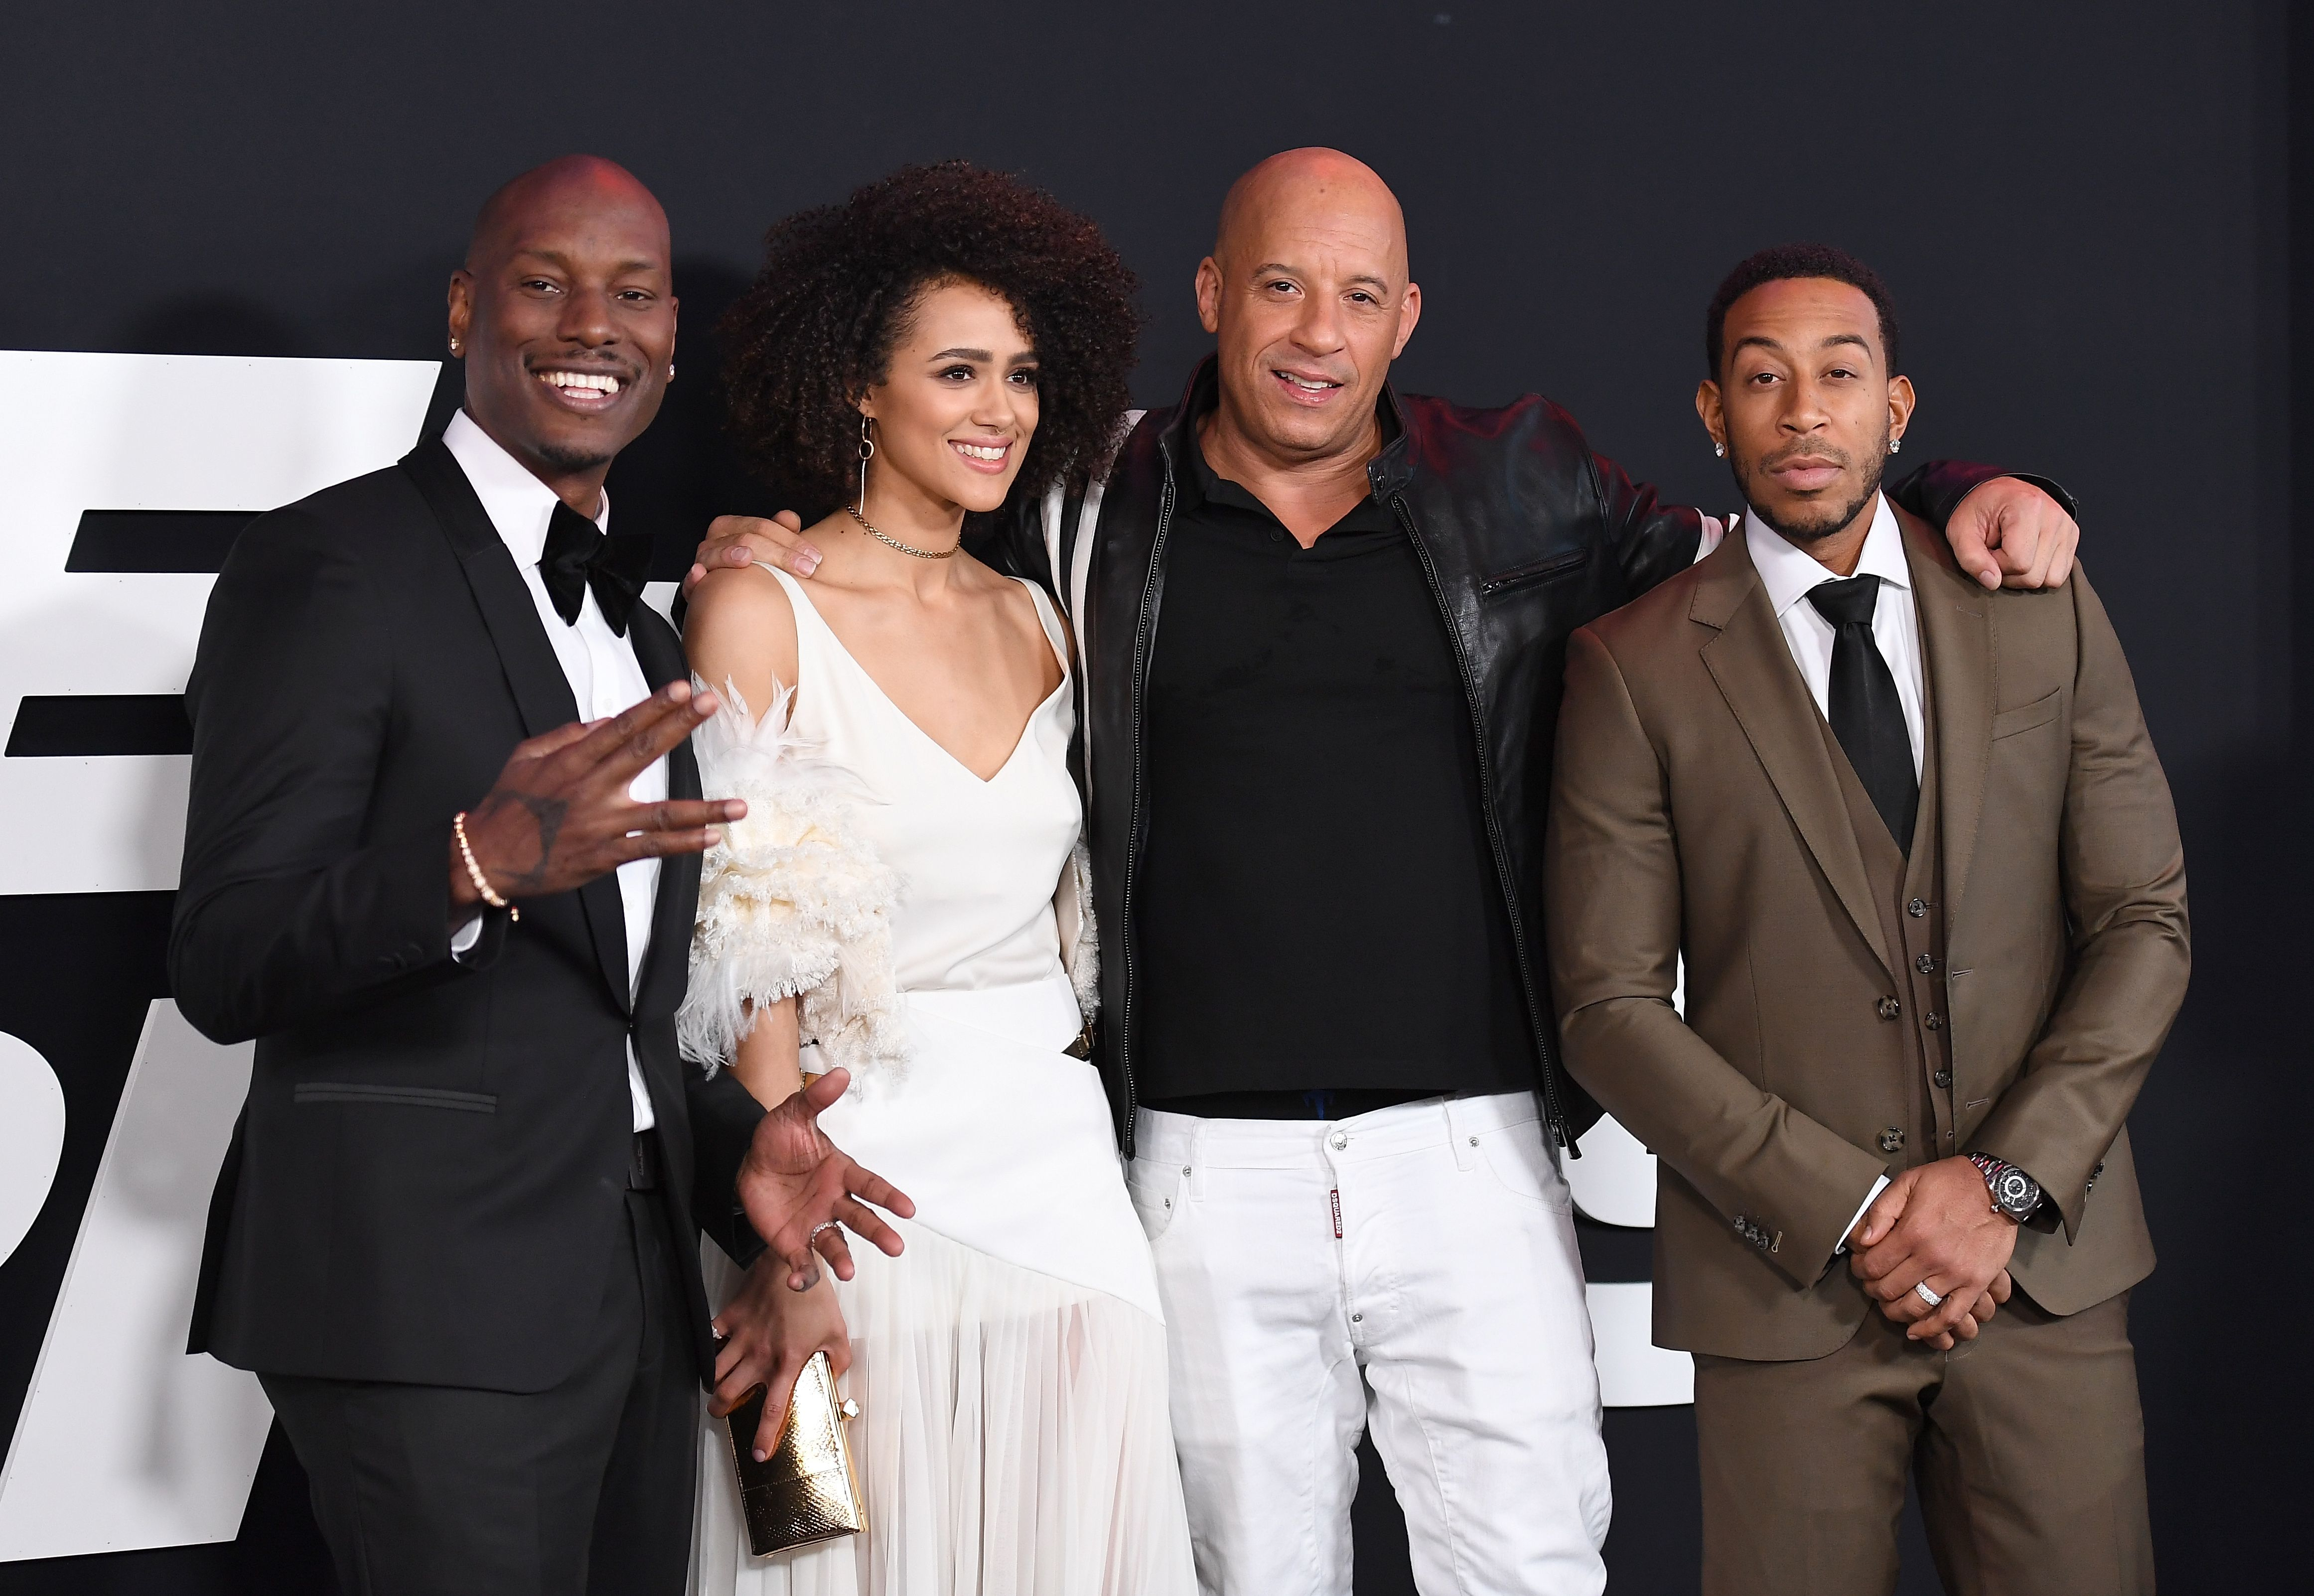 ENTERTAINMENT-US-CINEMA-THE FATE OF THE FURIOUS